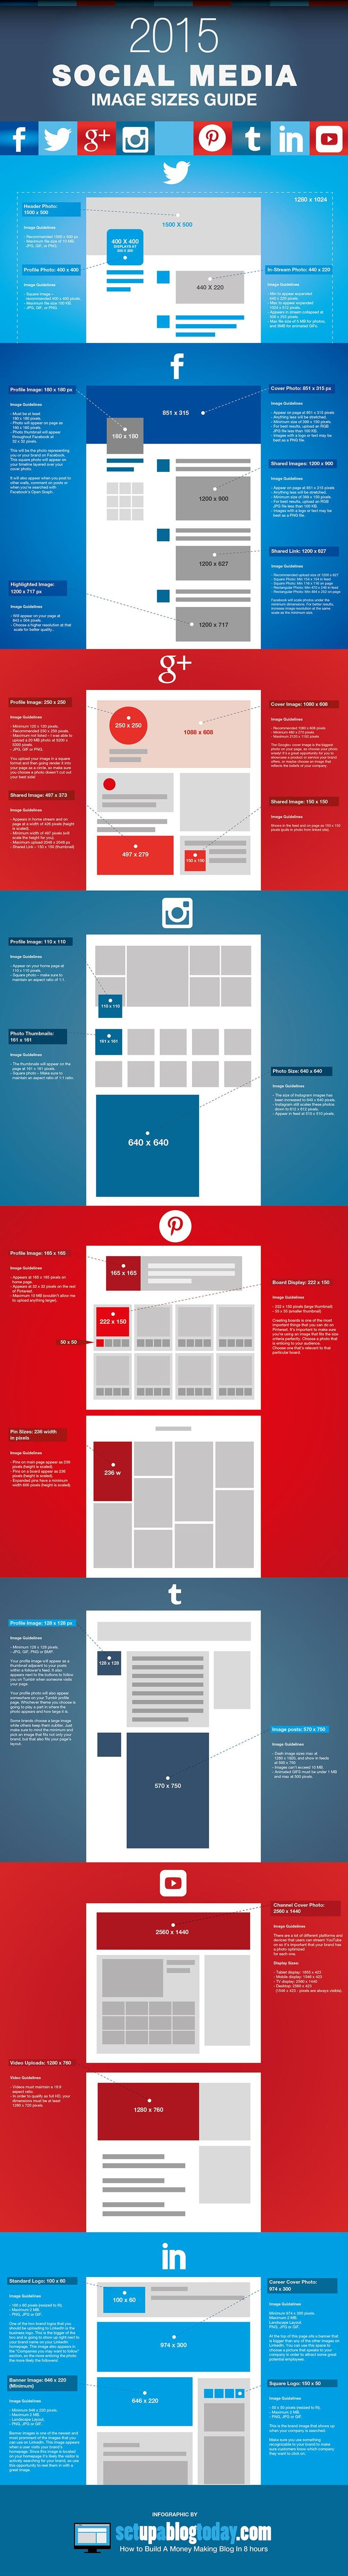 Social Media Image Size Guide 2015 Grow your business on auto-pilot